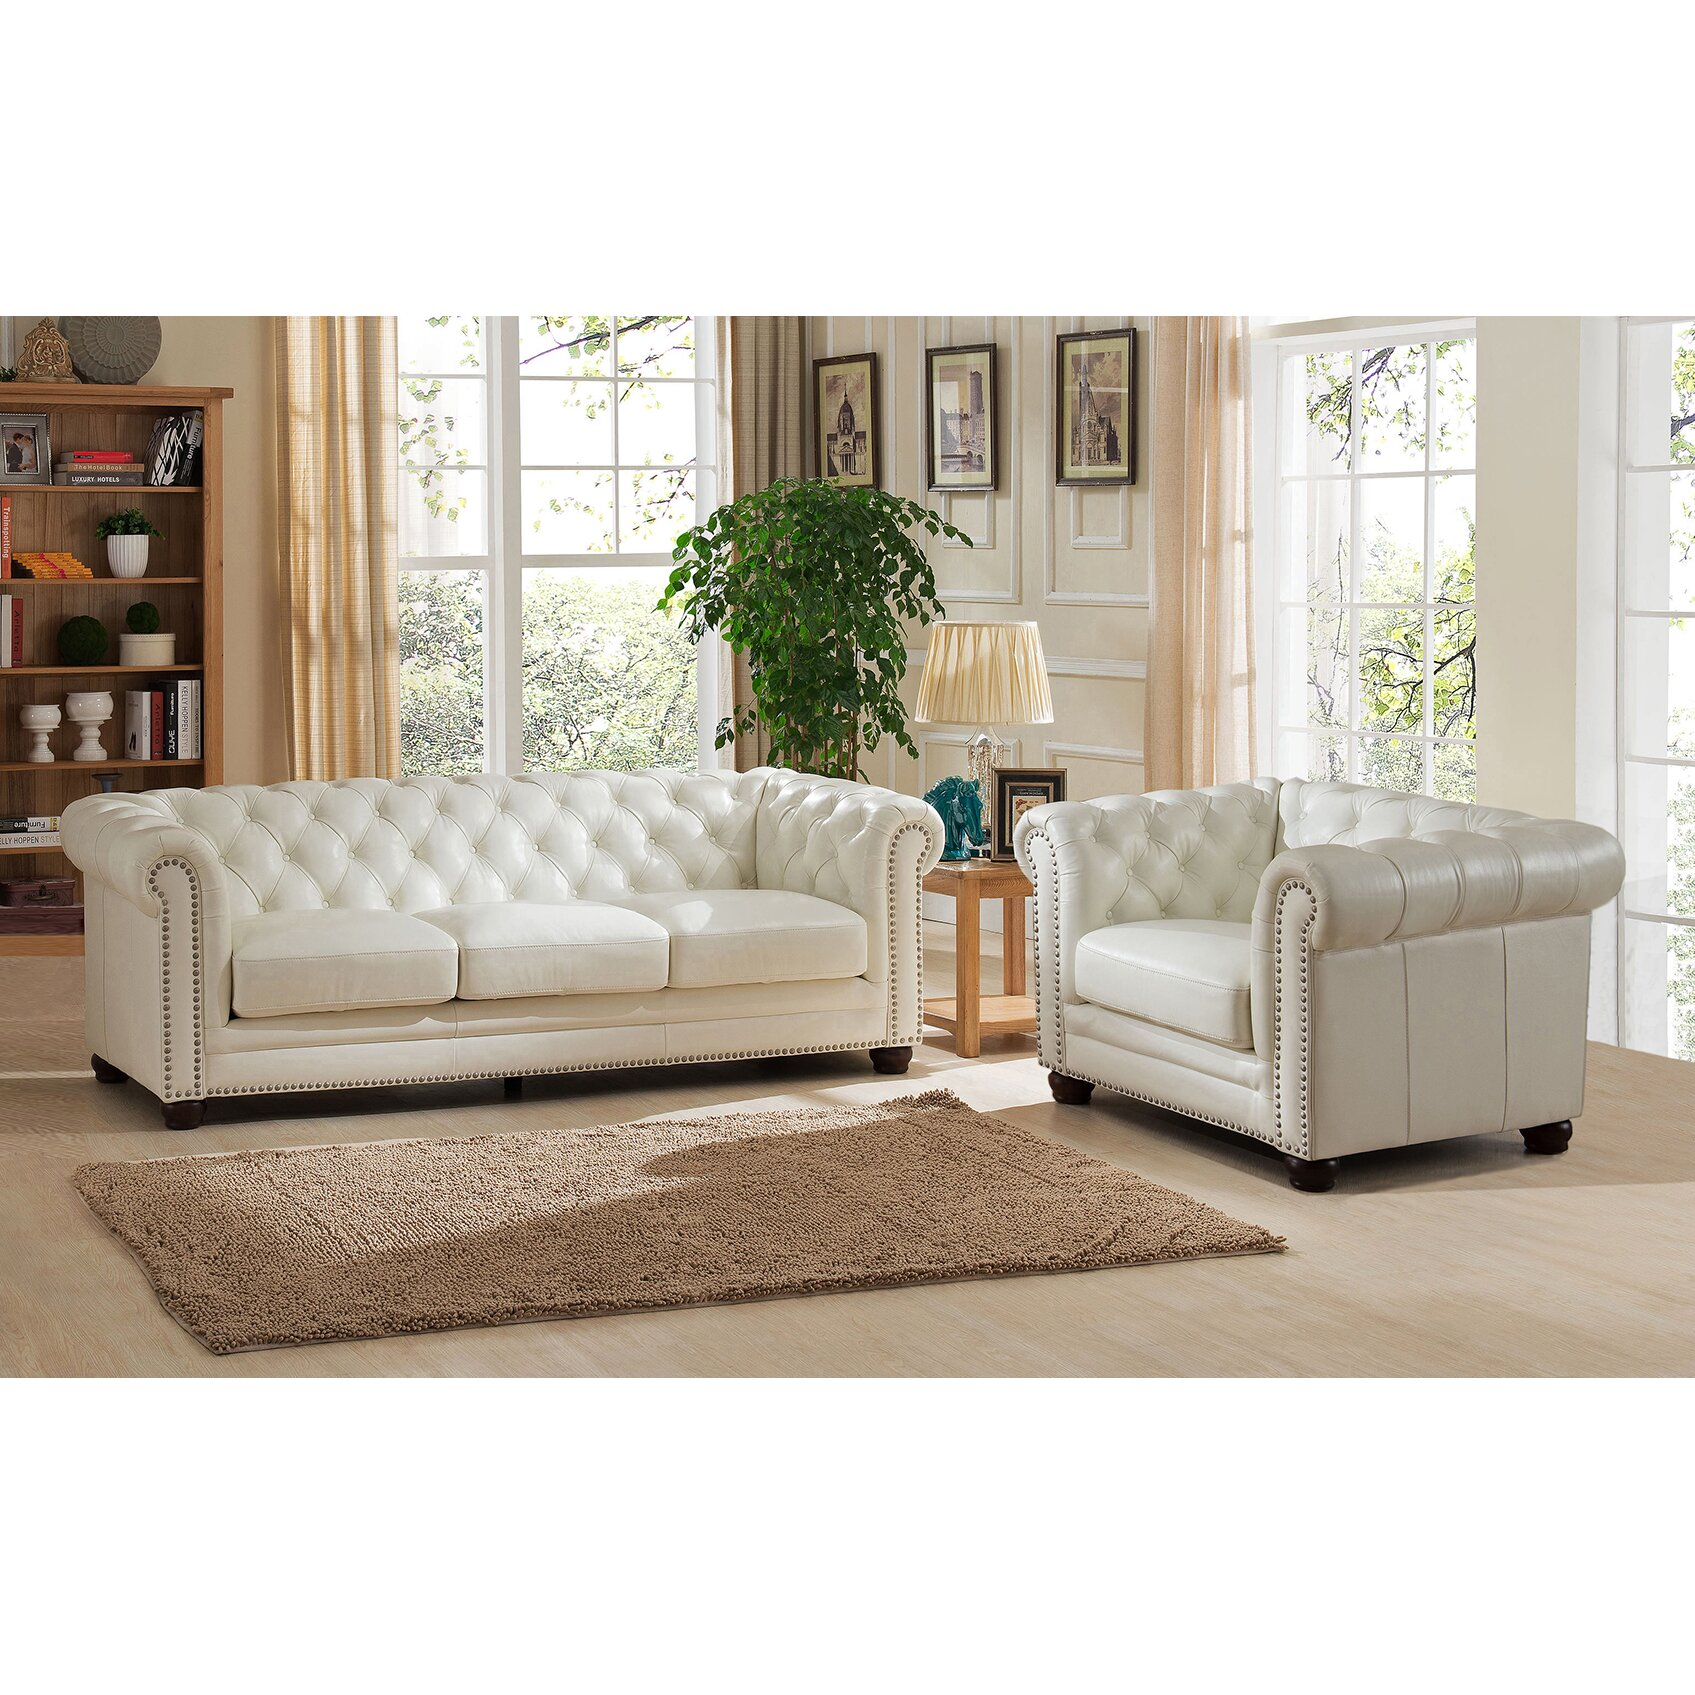 amax nashville 2 piece leather living room set